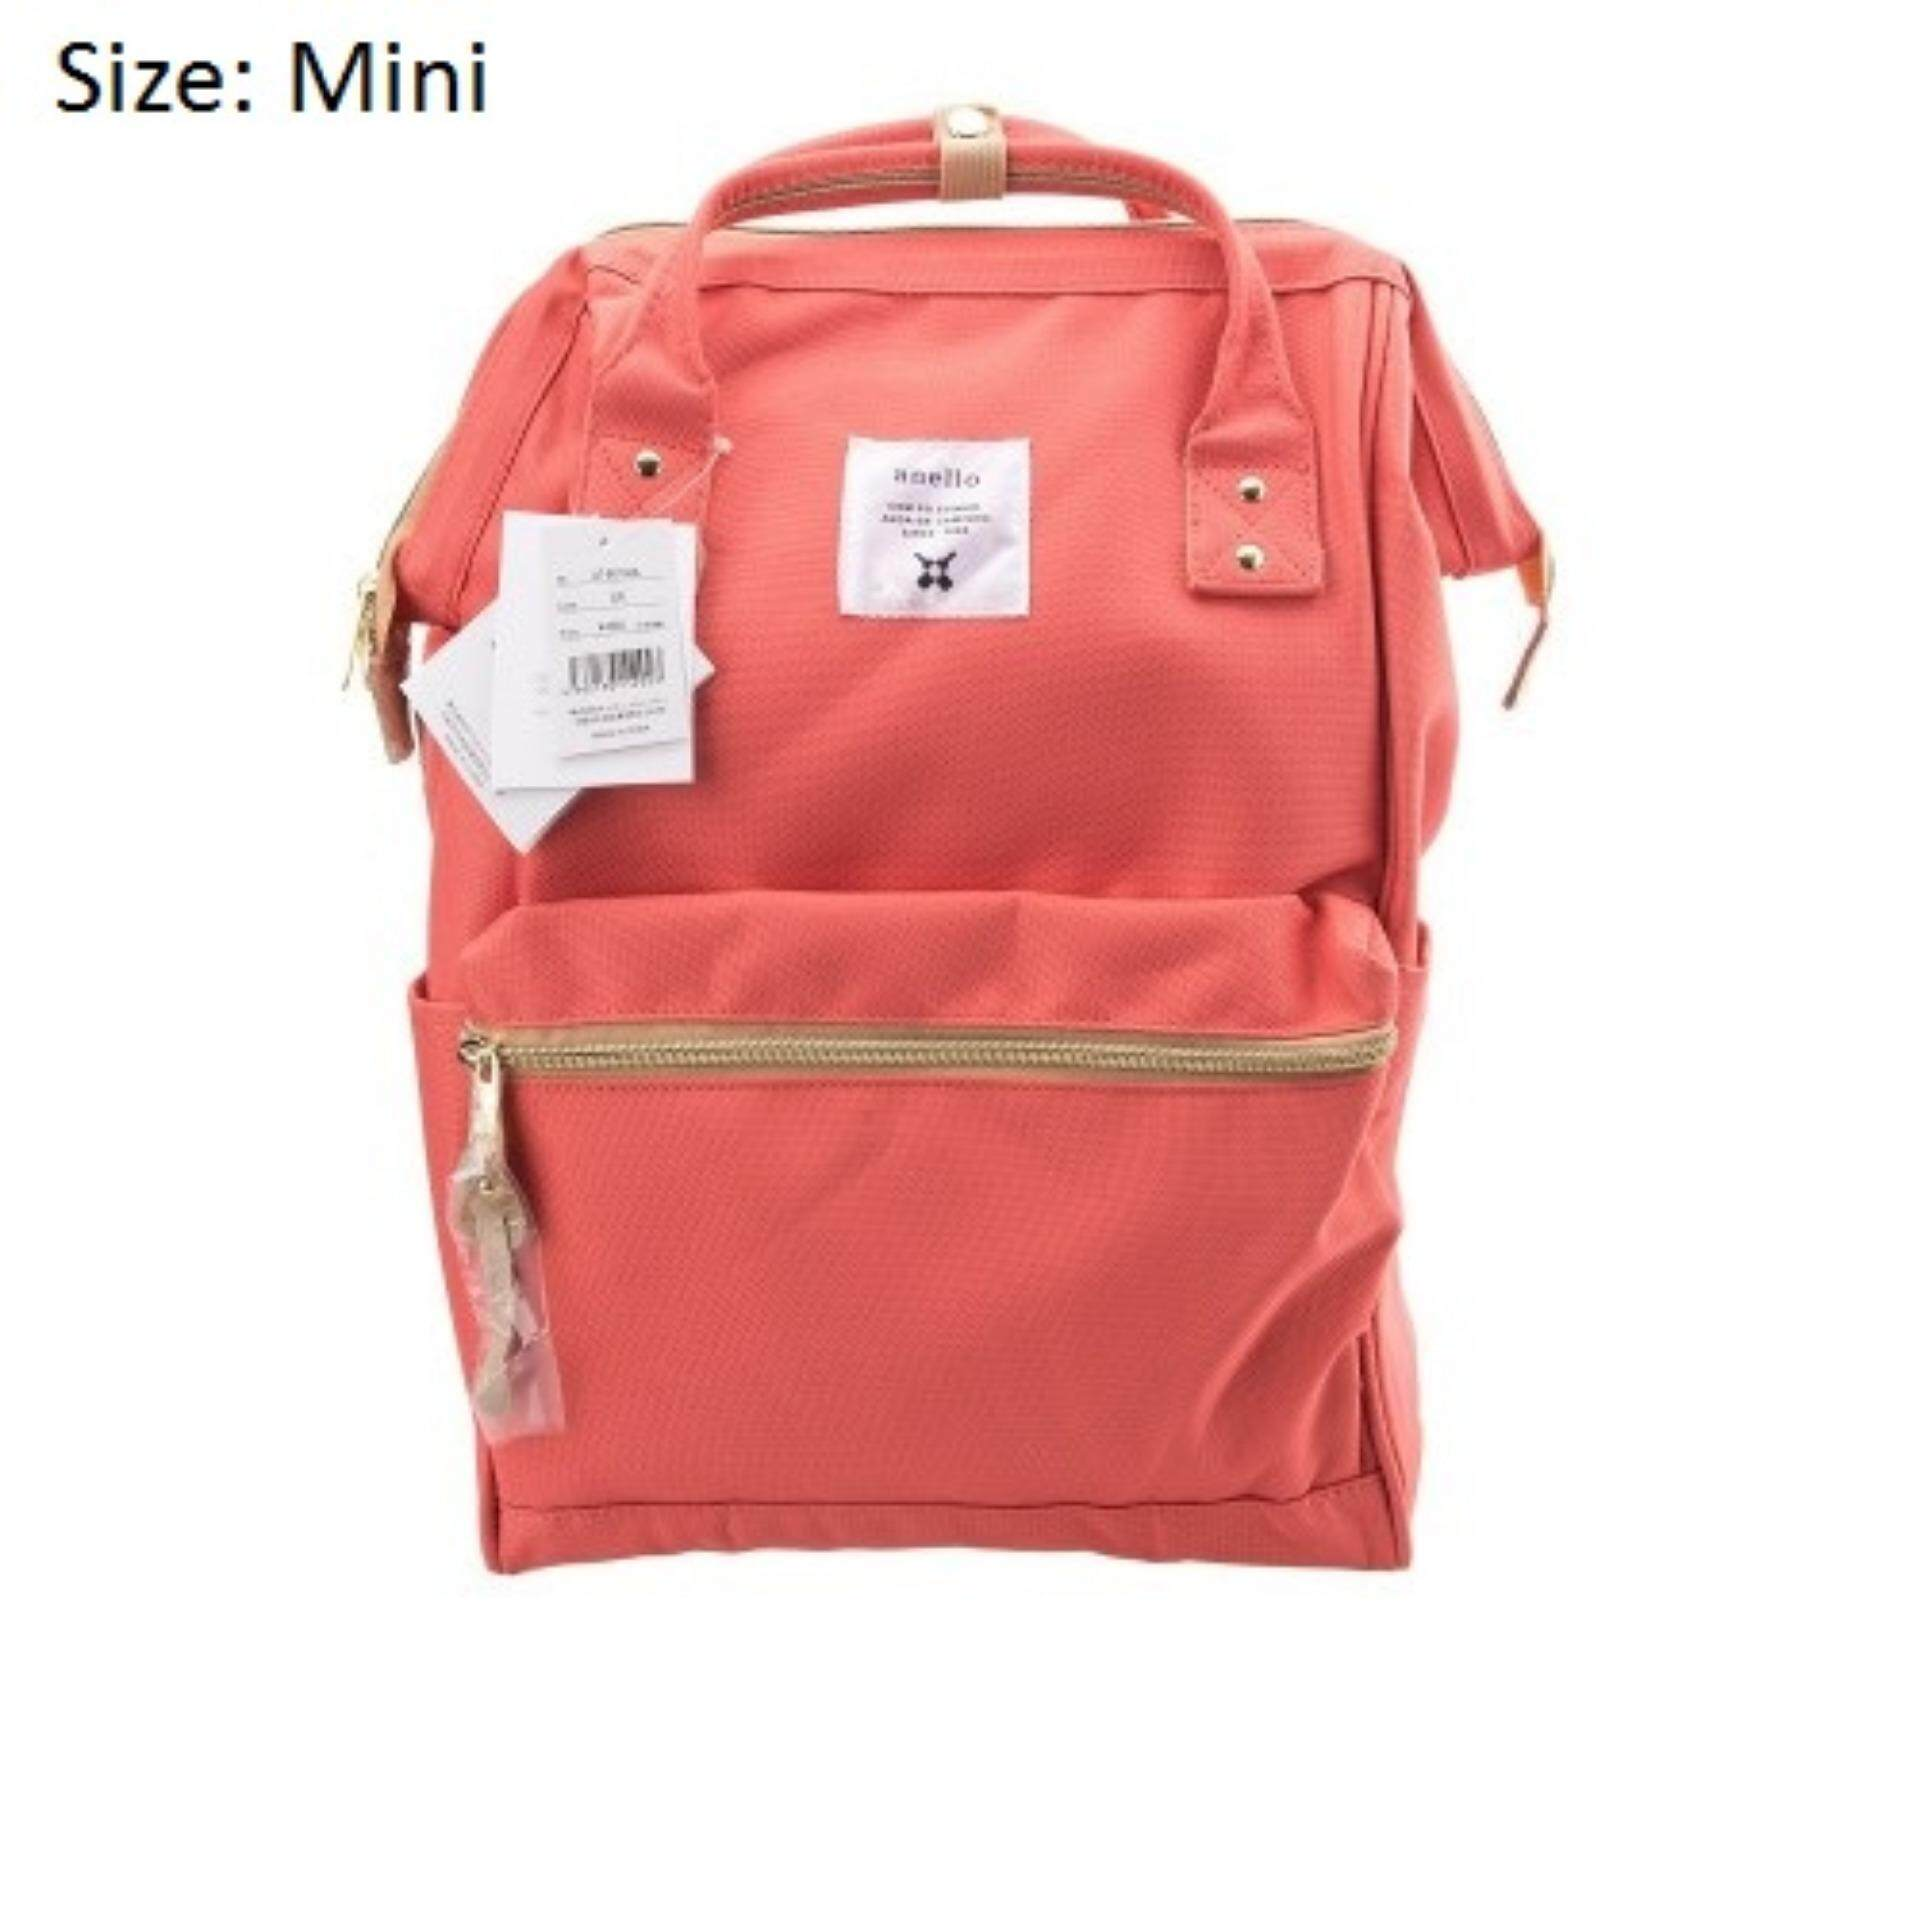 เชียงใหม่ กระเป๋าเป้ Anello Canvas Unisex Backpack Coral Pink (Mini Size) - Japan Imported 100%